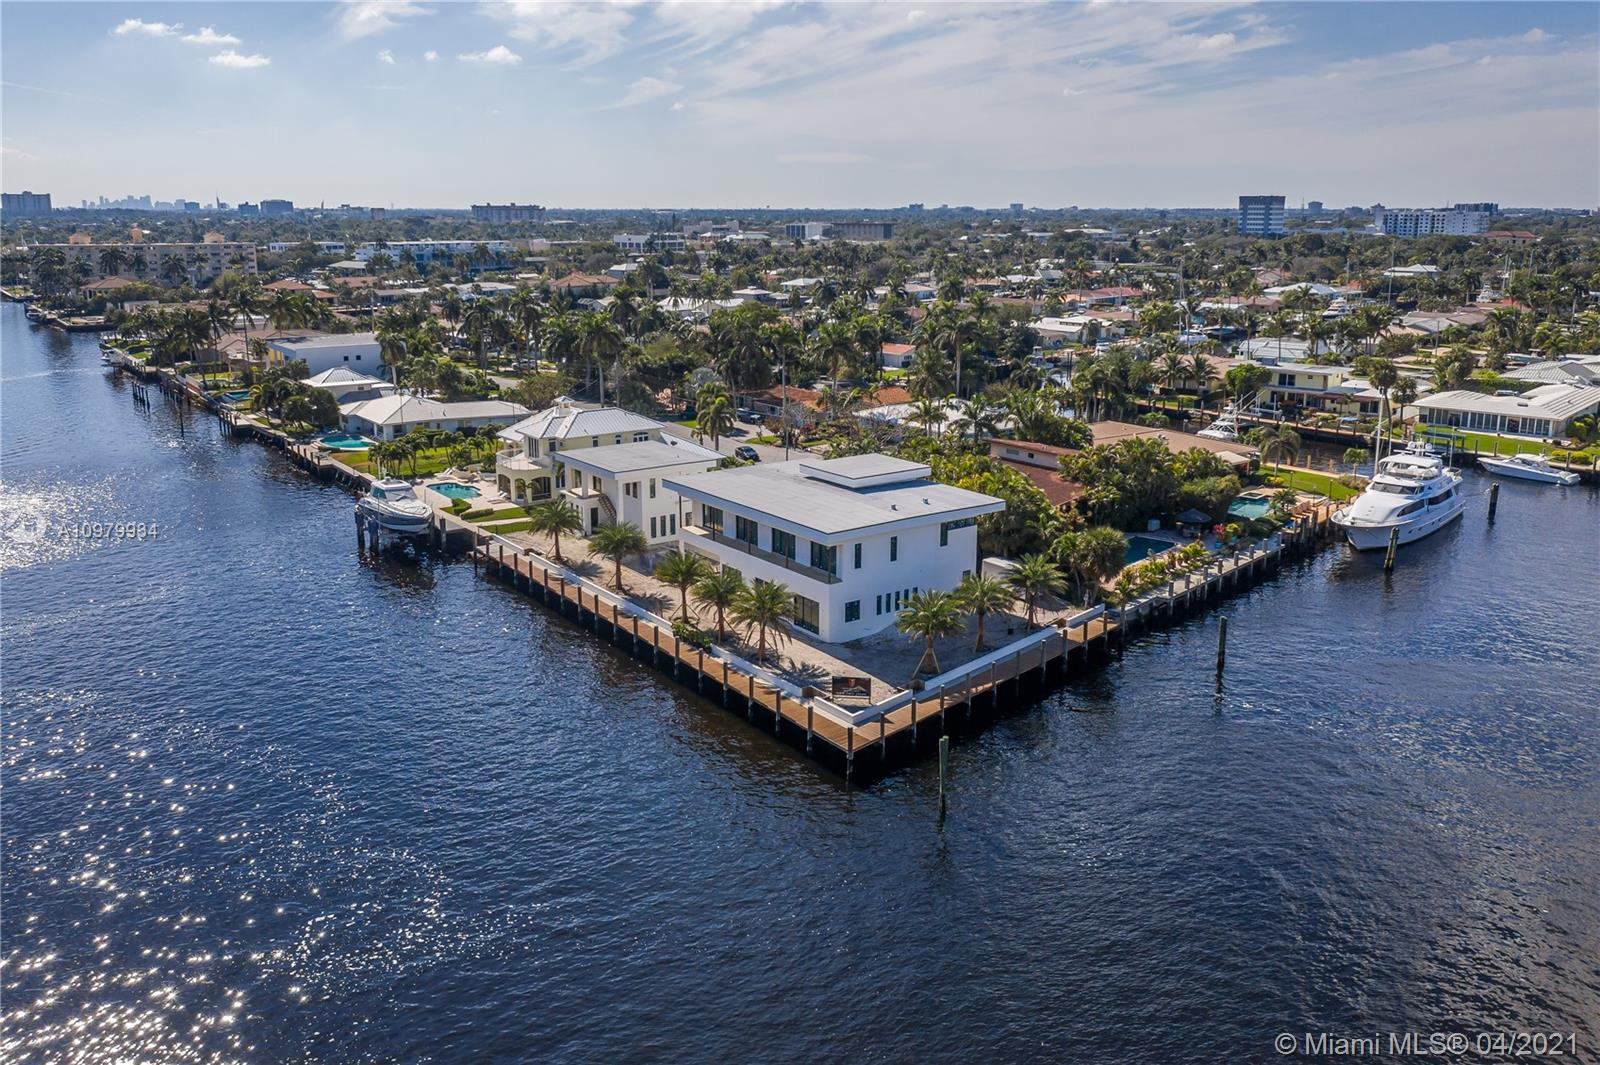 Another Luxurious Brand New Construction Estate Designed By Karam Brothers. This magnificent point lot estate is conveniently situated on one of the wider canals in the area and only minutes to Hillsboro inlet. ULTIMATE Yachter's dream with 267 feet of water frontage offering breathtaking views and all the benefits of waterfront living. The contemporary architecture and layout design offer a stunning main house featuring top-of-the-line upgrades and finishing touches and a separate carriage house perfect for your guests, captain or private gym. Call today for details and to schedule your private tour.